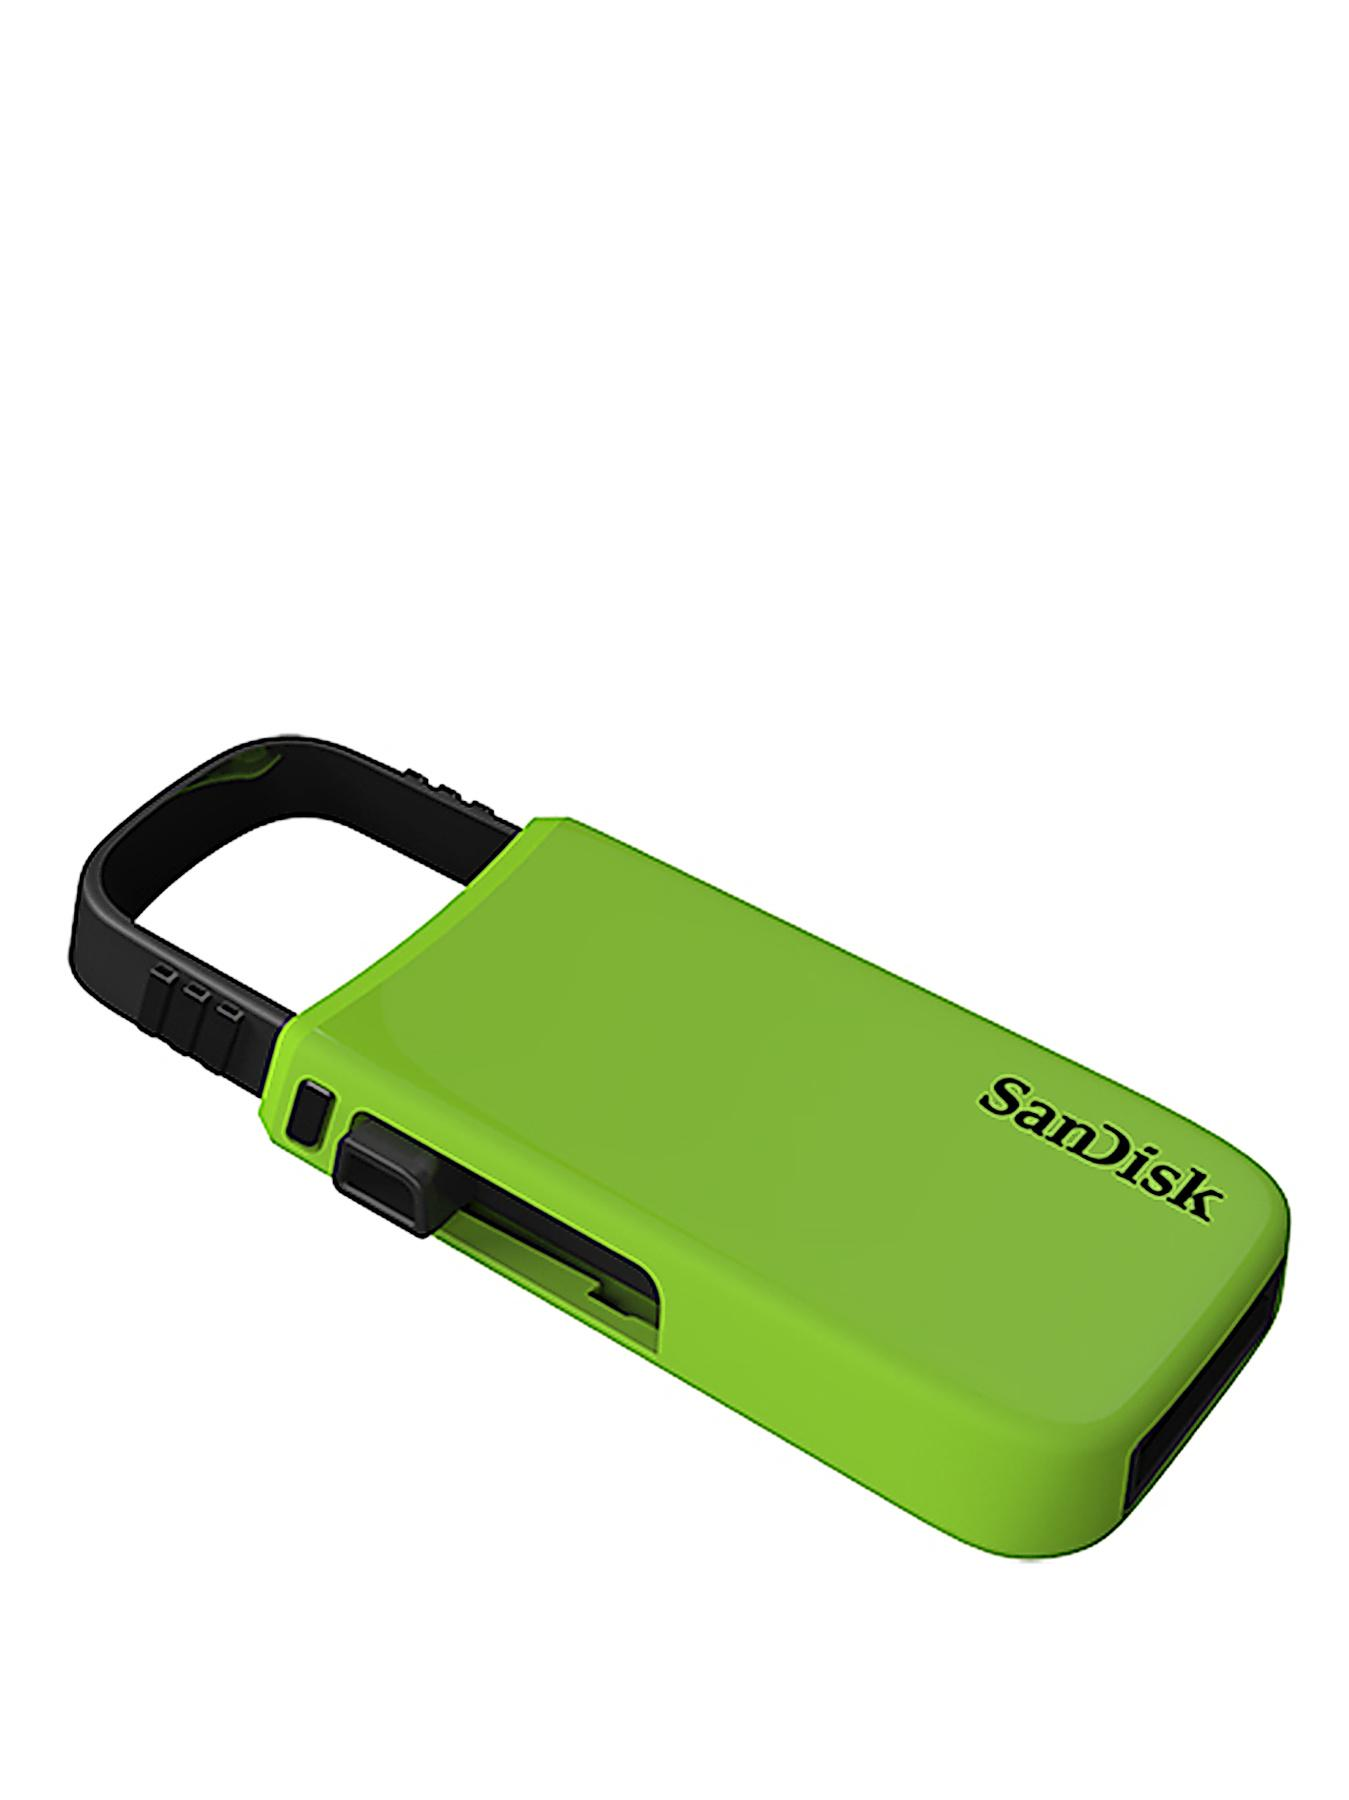 SanDisk Cruzer U 64GB USB Flash Drive - Green - Green, Green